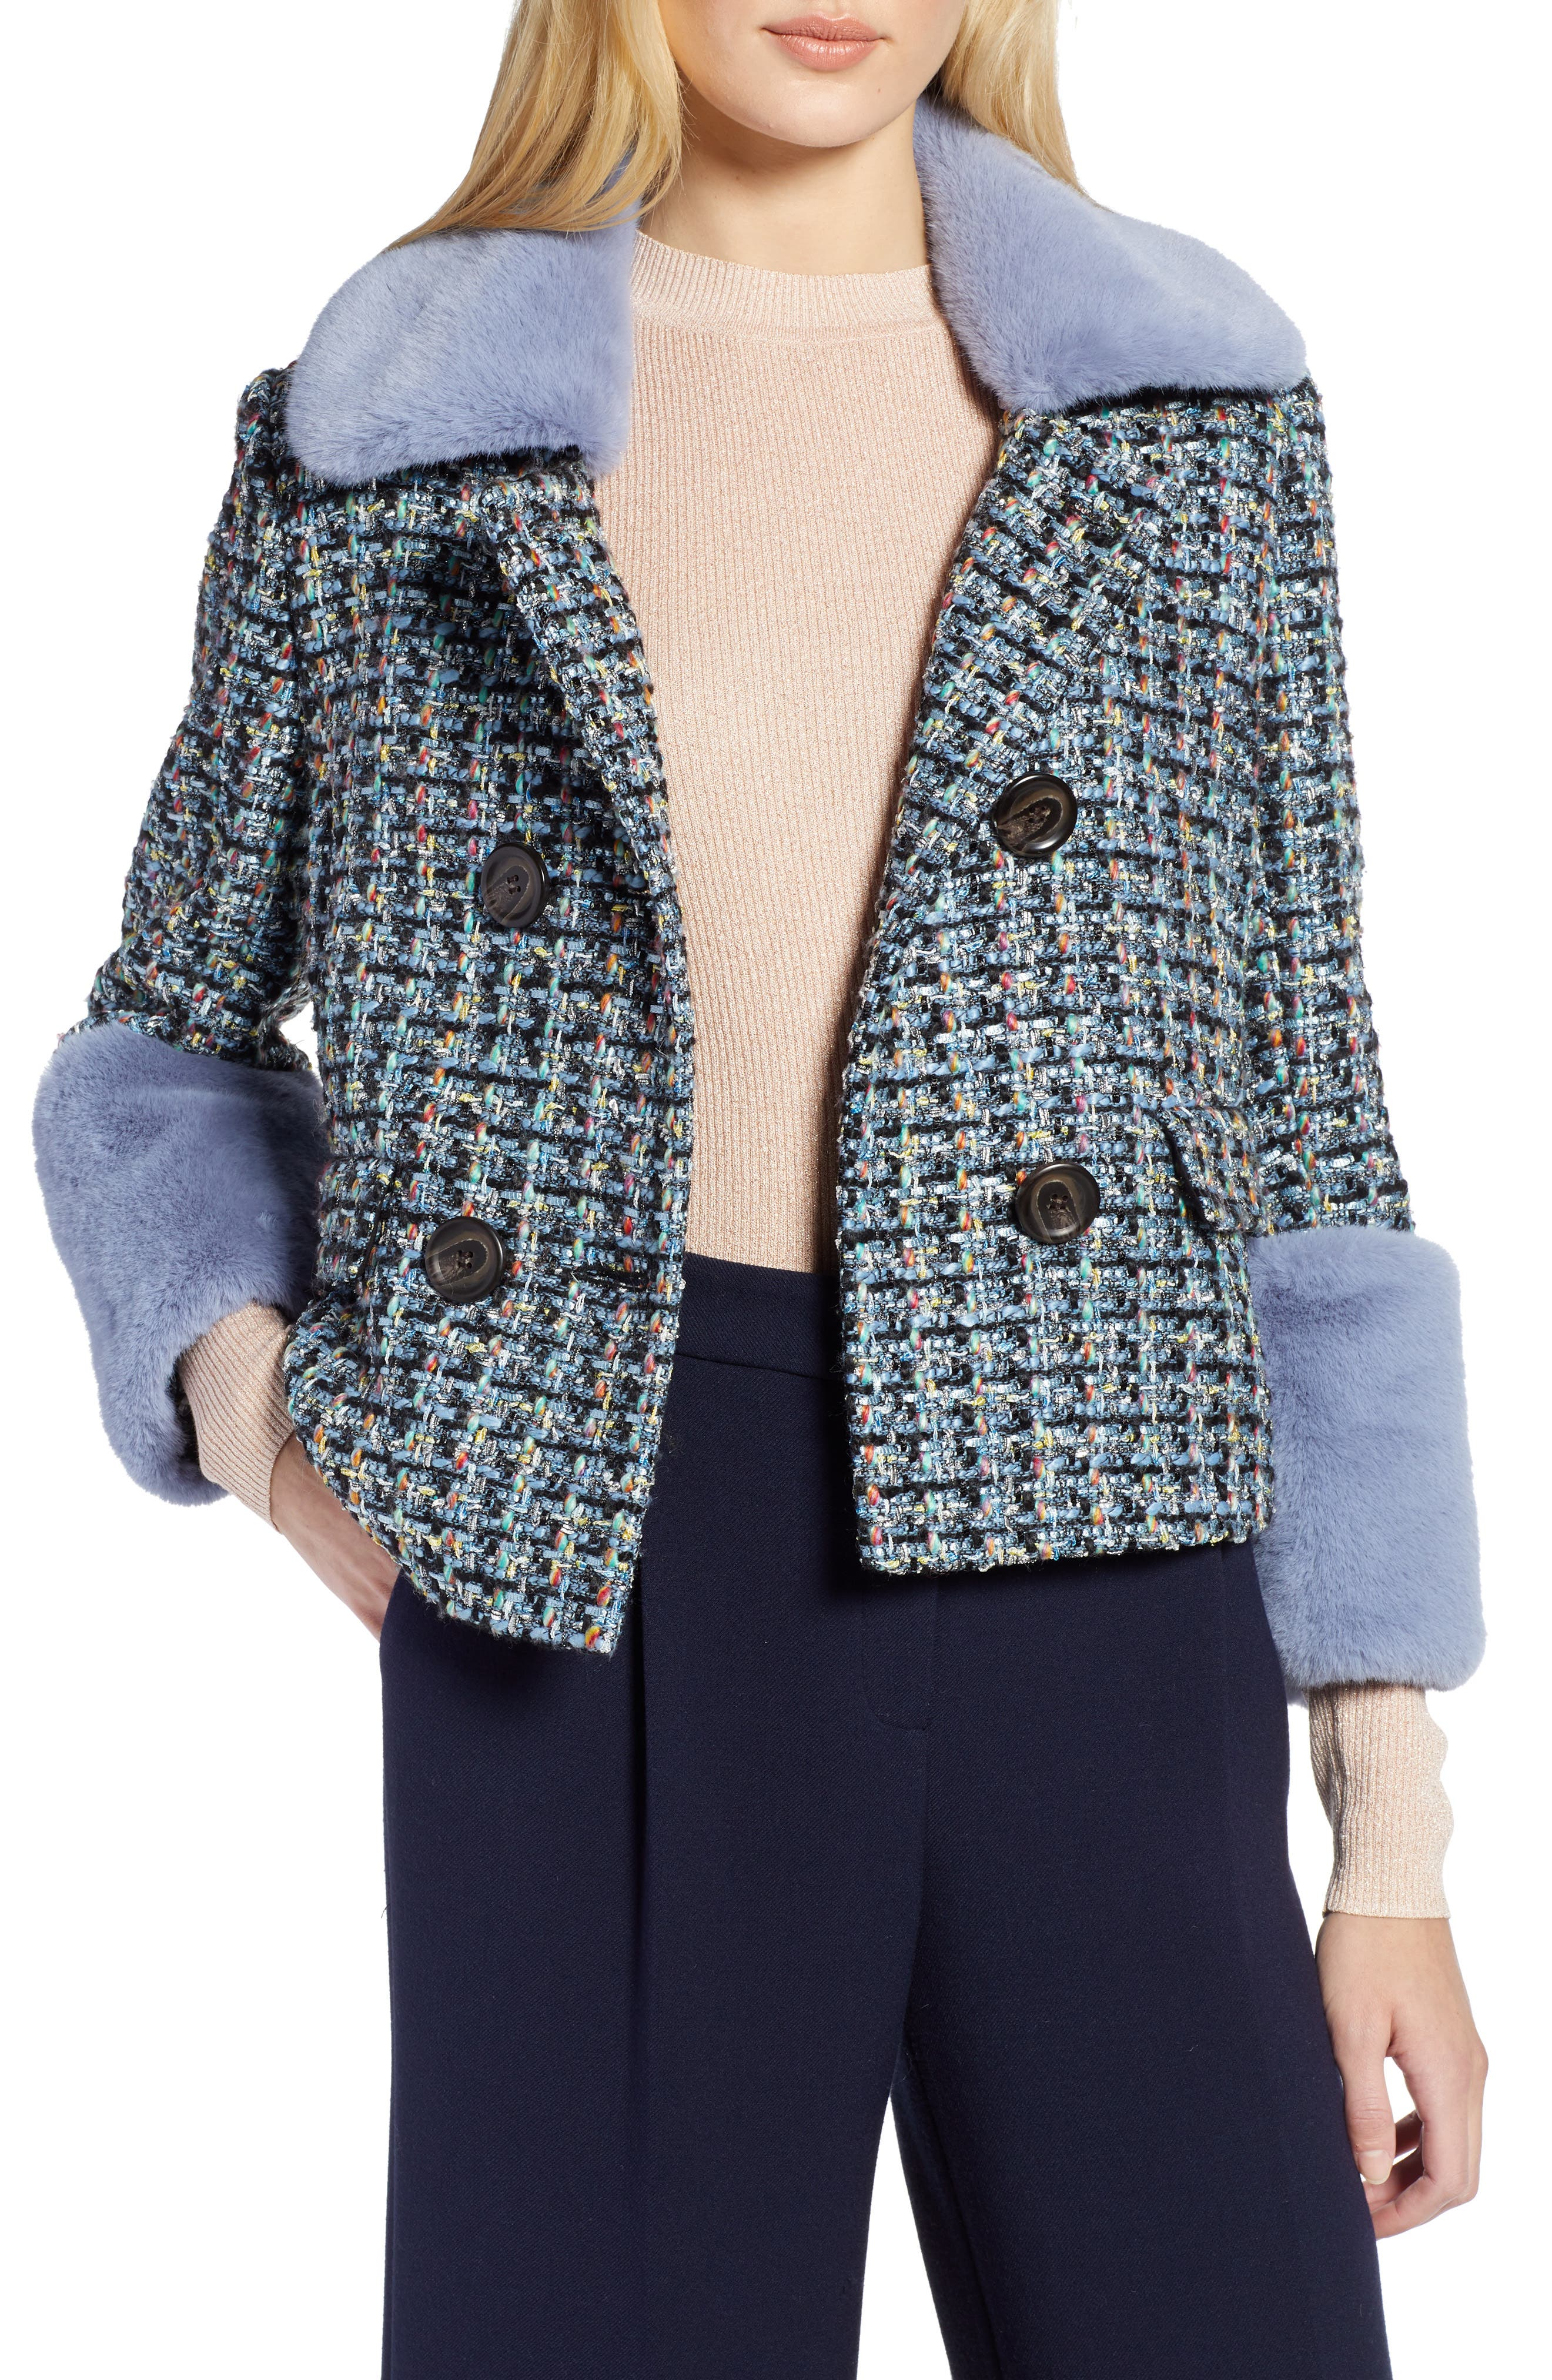 x Atlantic-Pacific Tweed Jacket with Removable Faux Fur Trim,                             Main thumbnail 1, color,                             BLACK MULTI TWEED